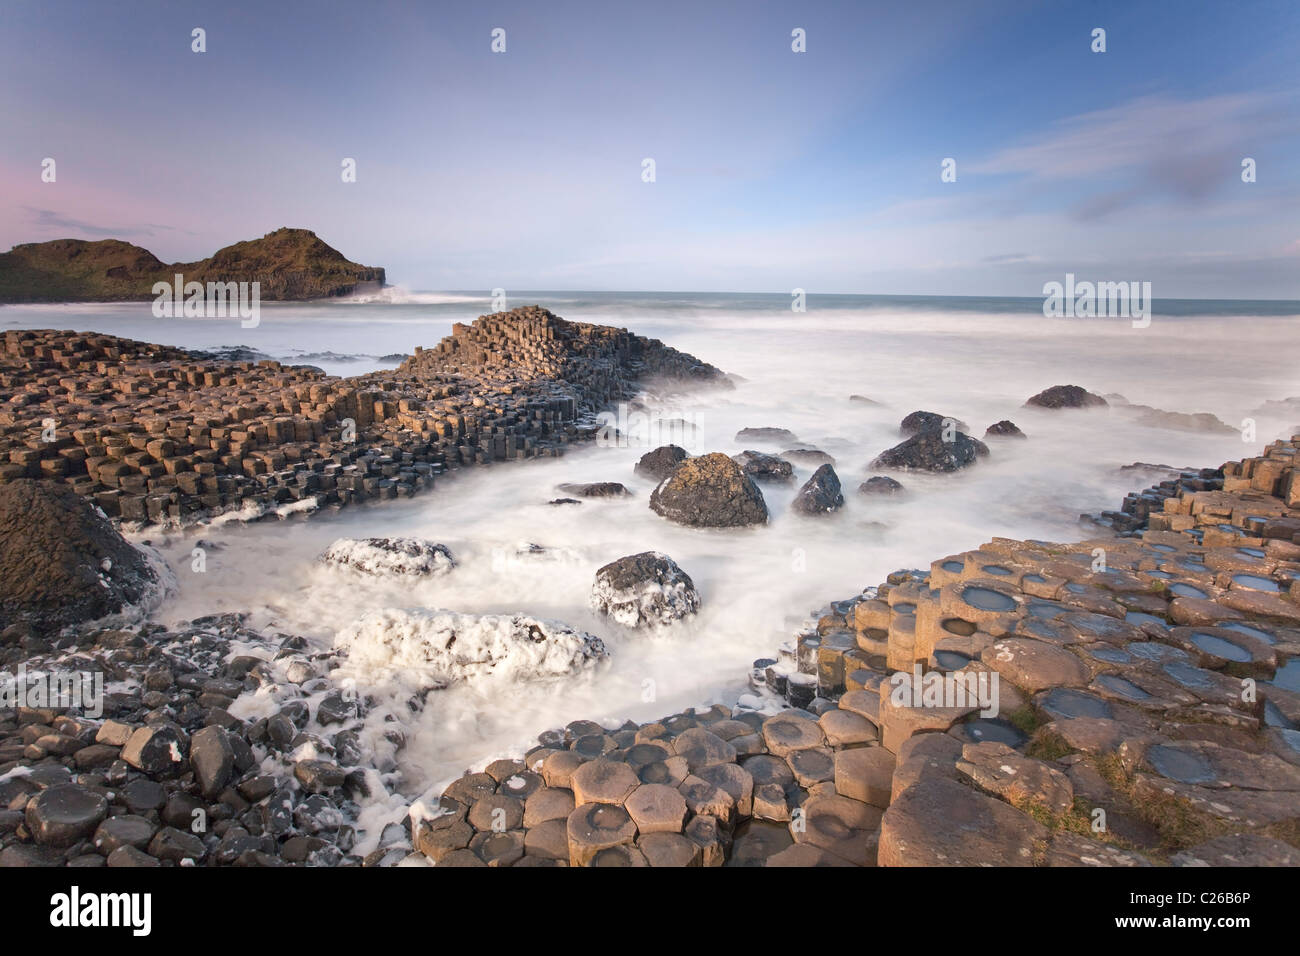 Giants Causeway, Co Antrim. - Stock Image